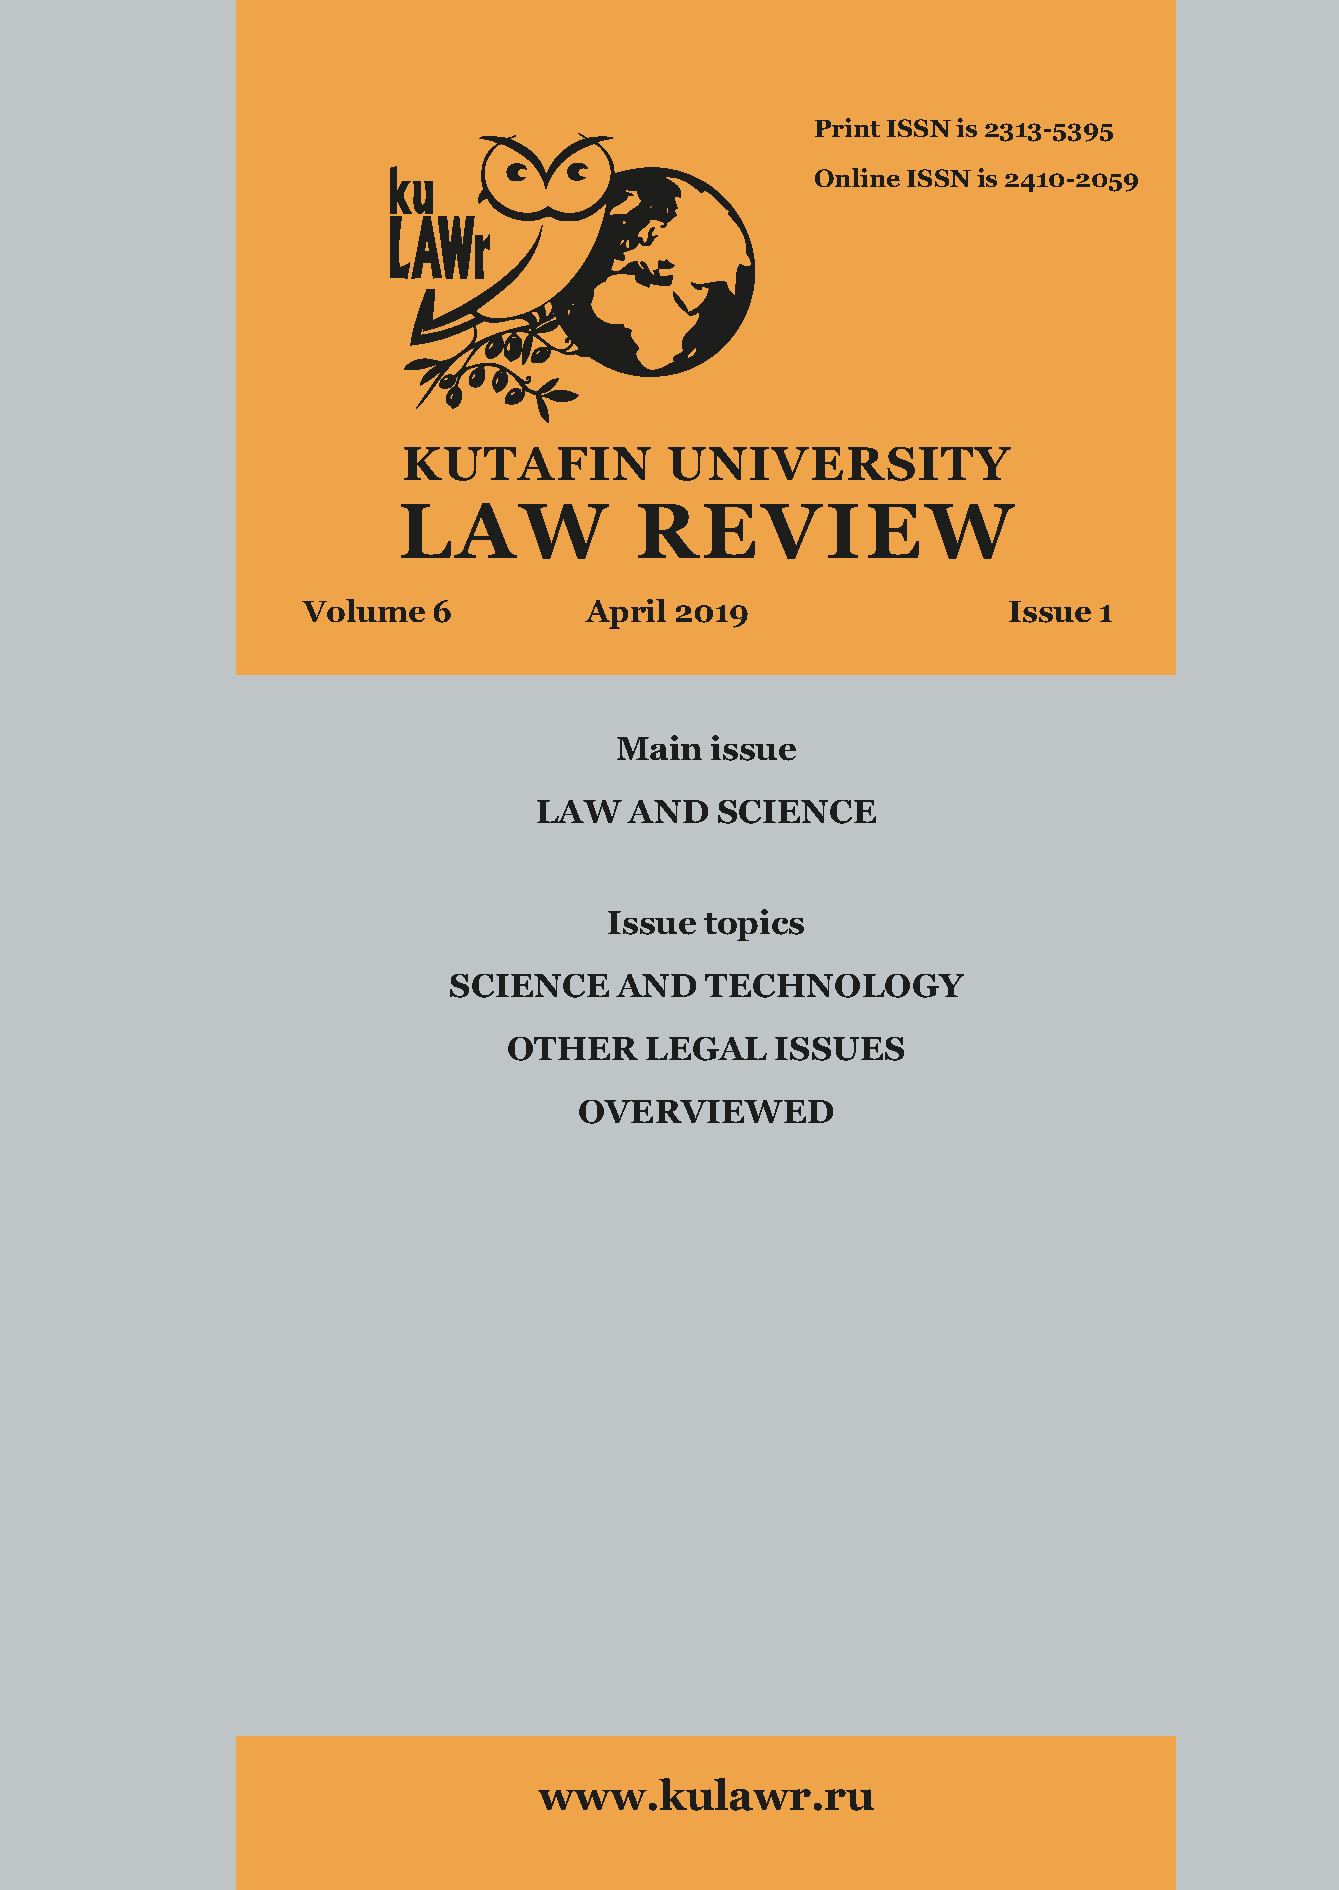 1.2019_Kutafin University Law Review_Cover